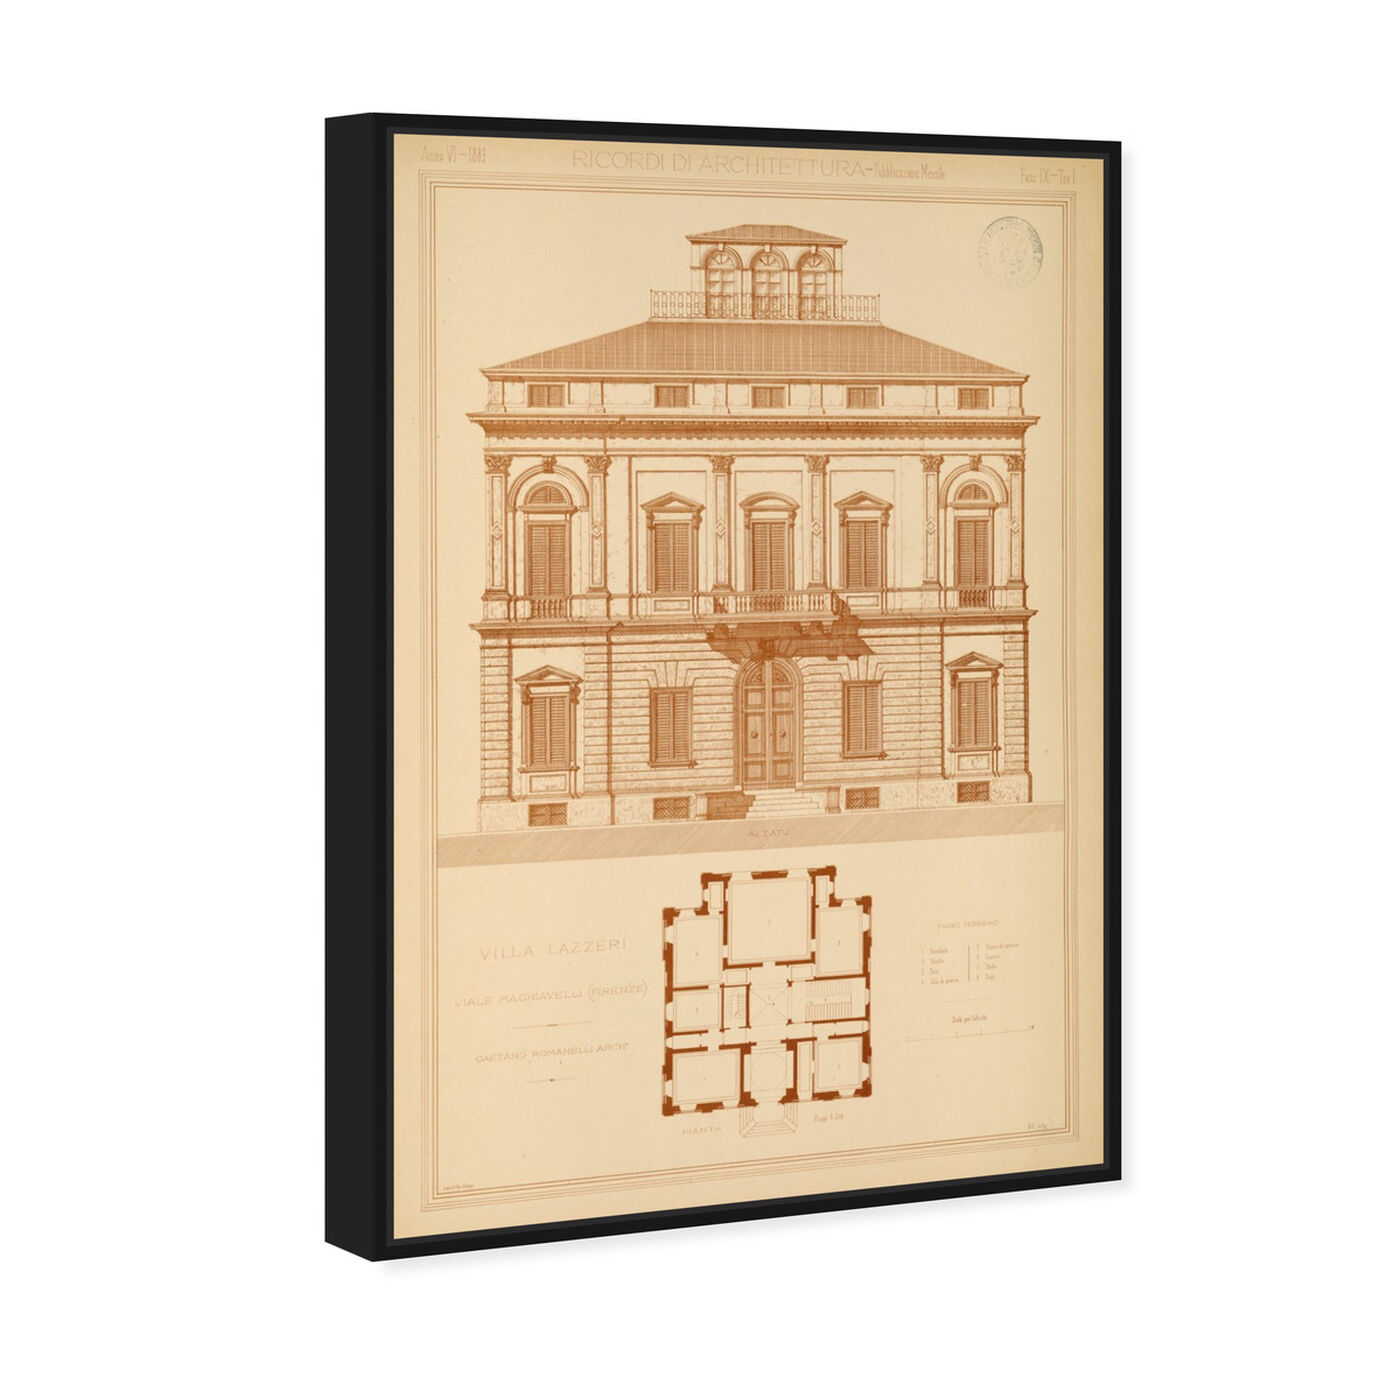 Angled view of Villa Lazzeri - The Art Cabinet featuring architecture and buildings and structures art.